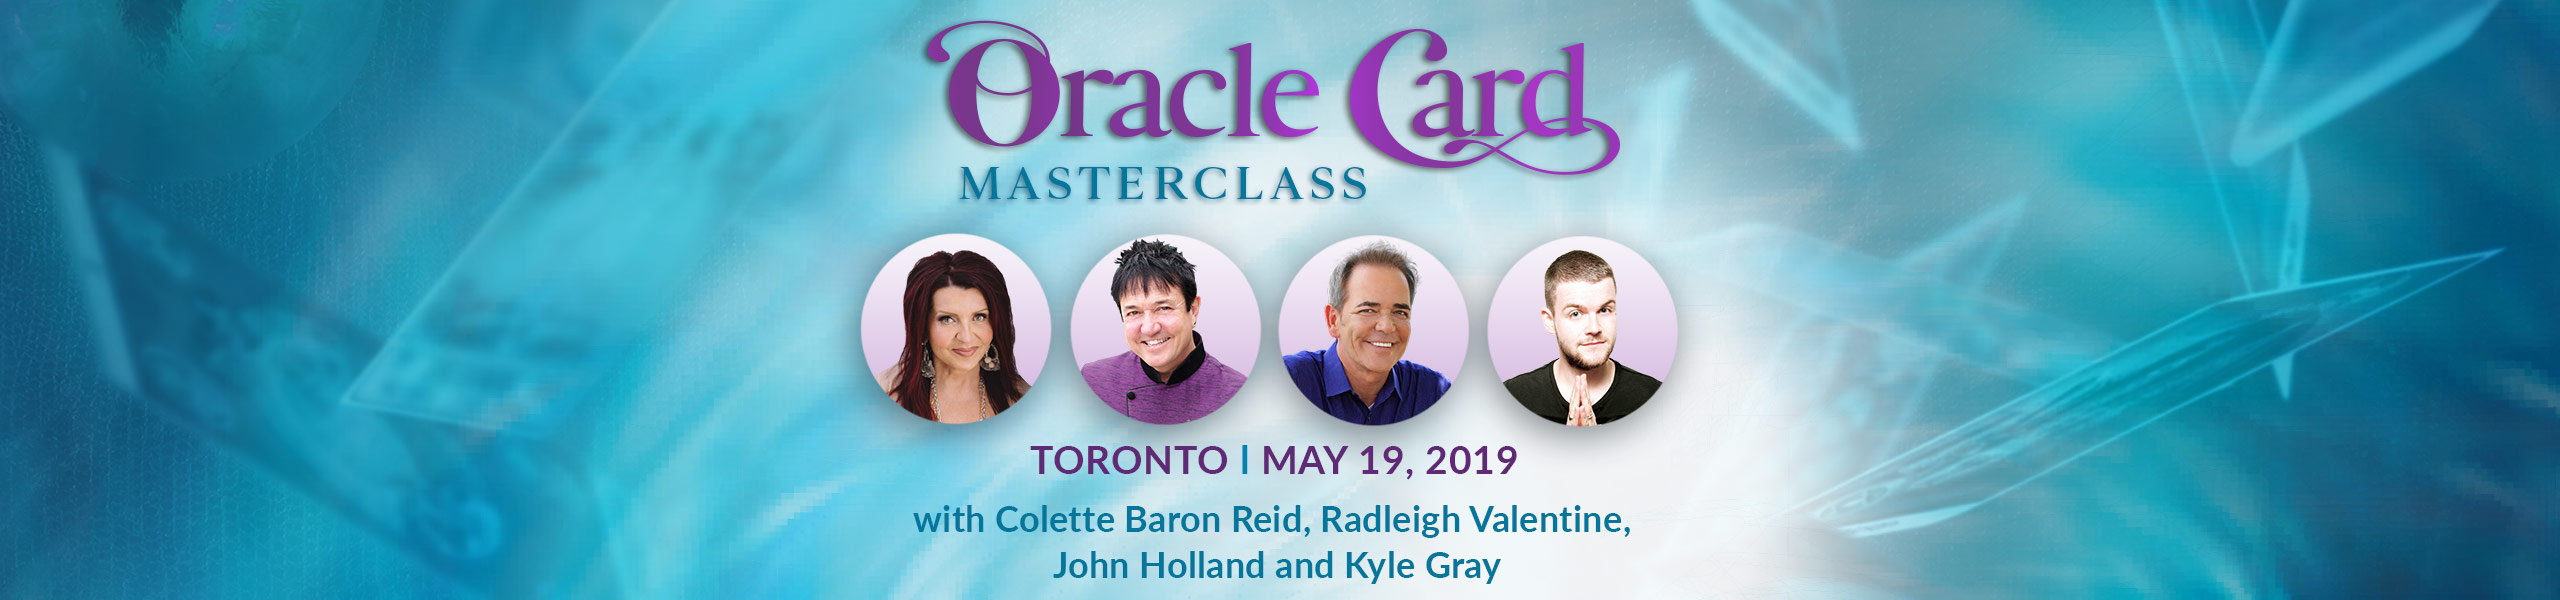 Oracle Card Masterclass 2019